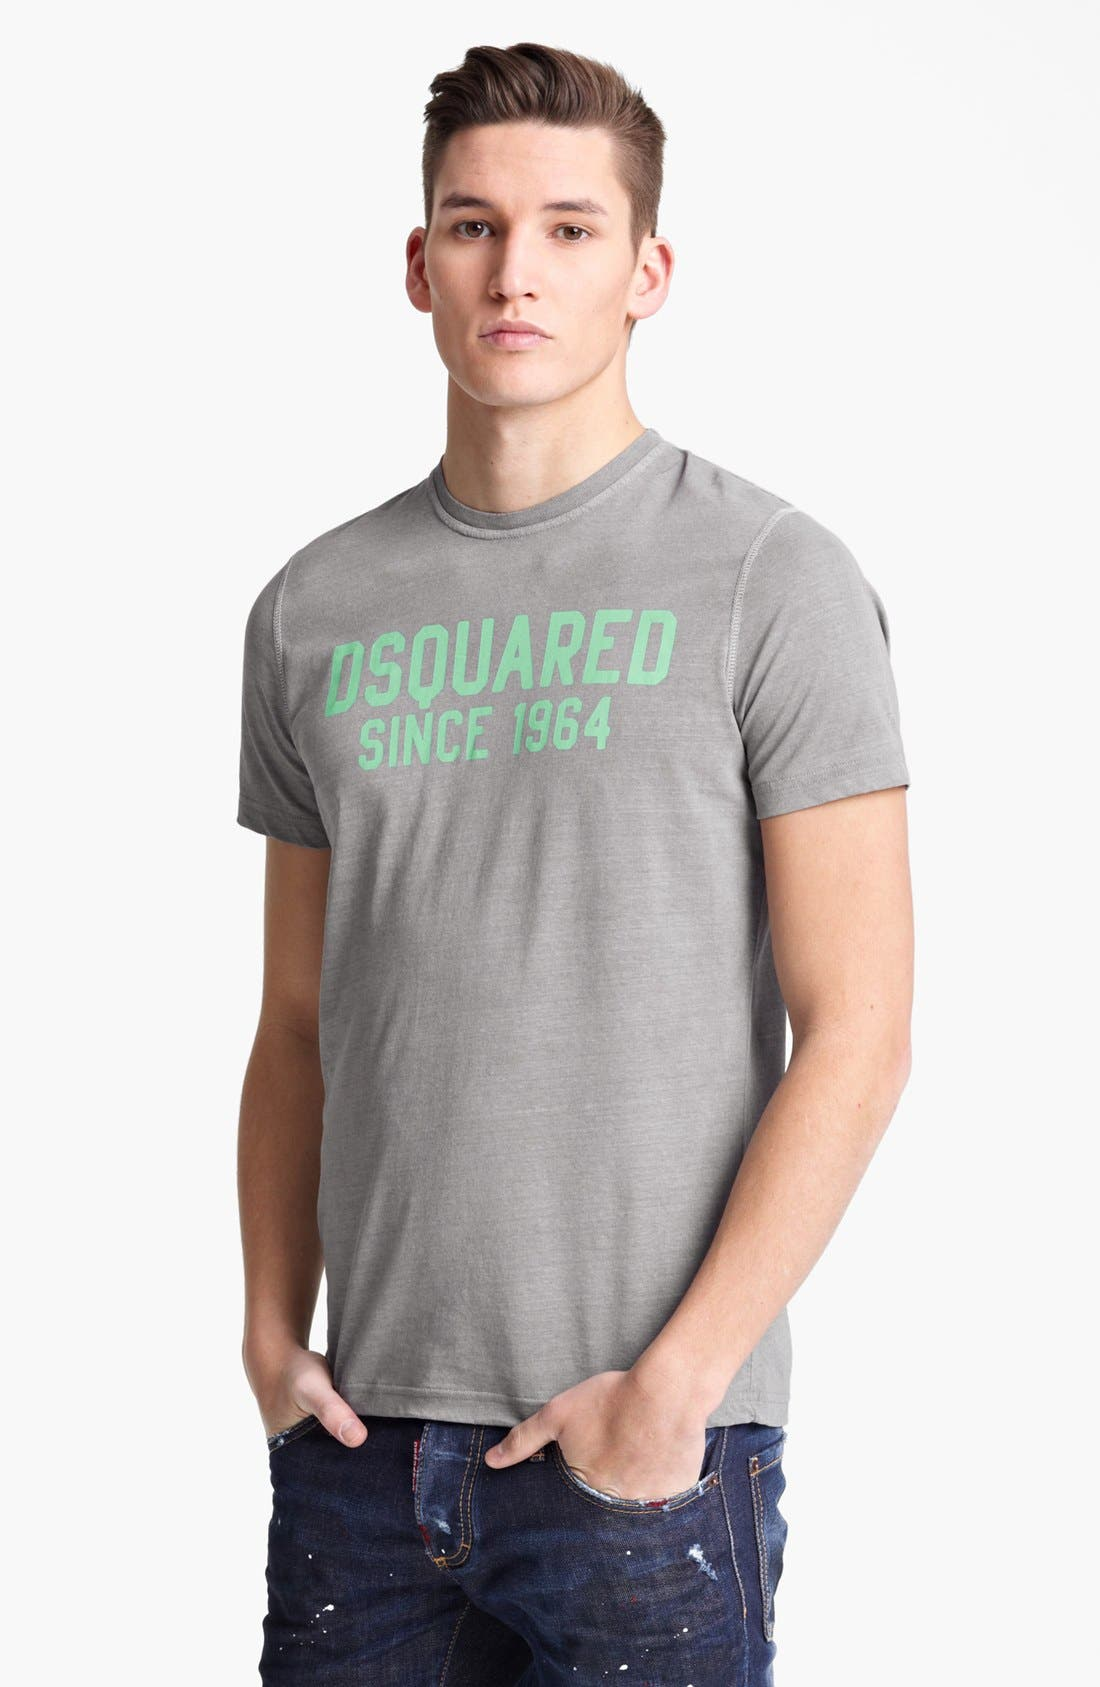 Alternate Image 1 Selected - Dsquared2 Graphic T-Shirt